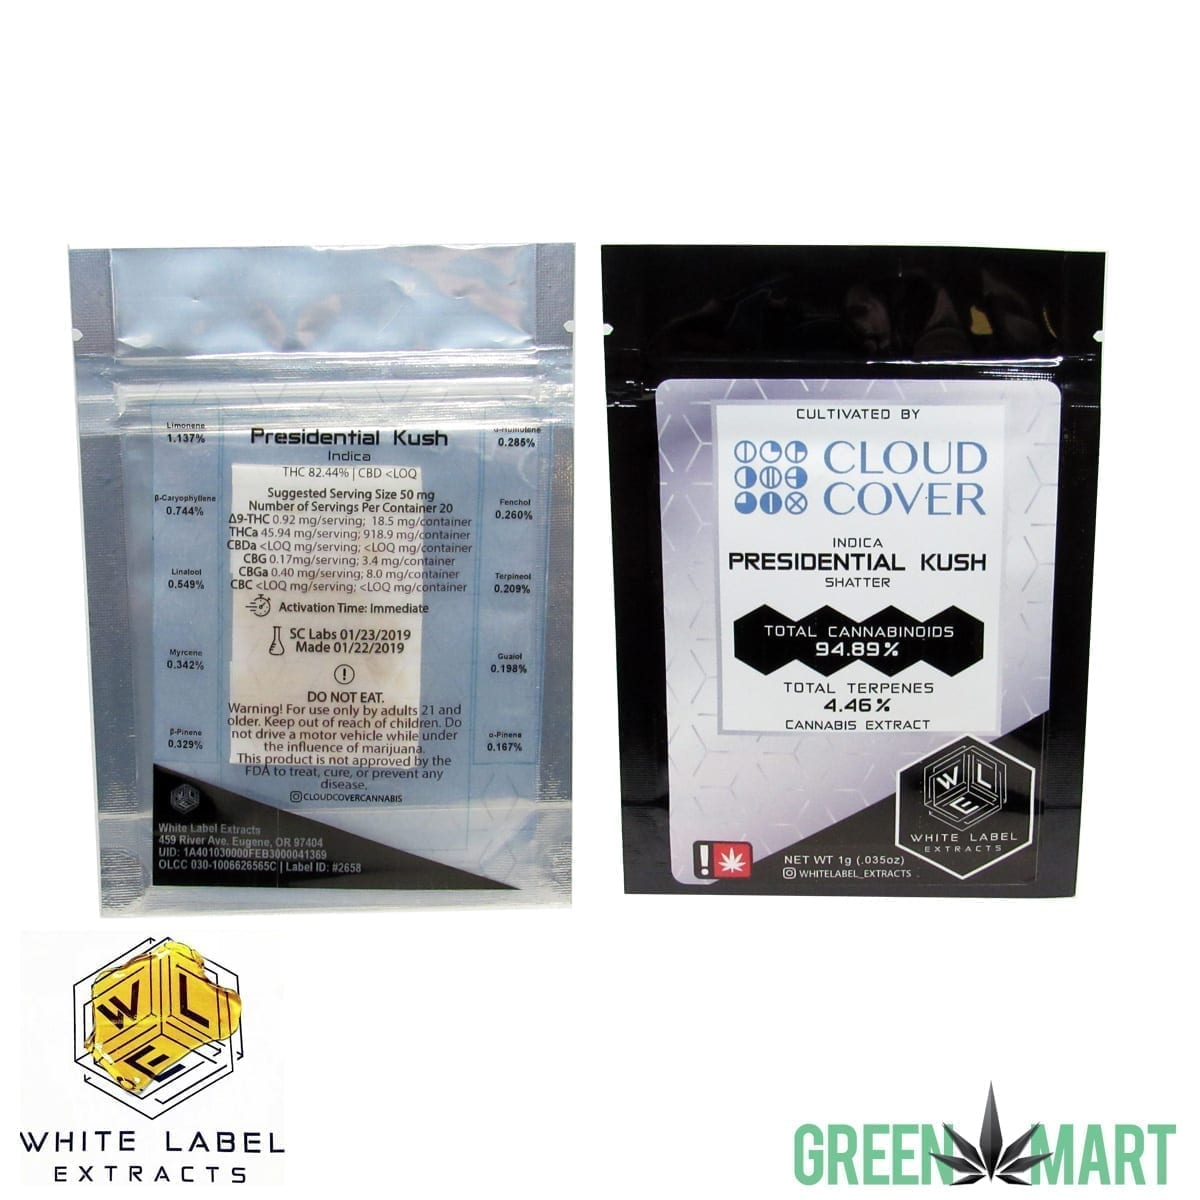 White Label Extracts - Presidential Kush